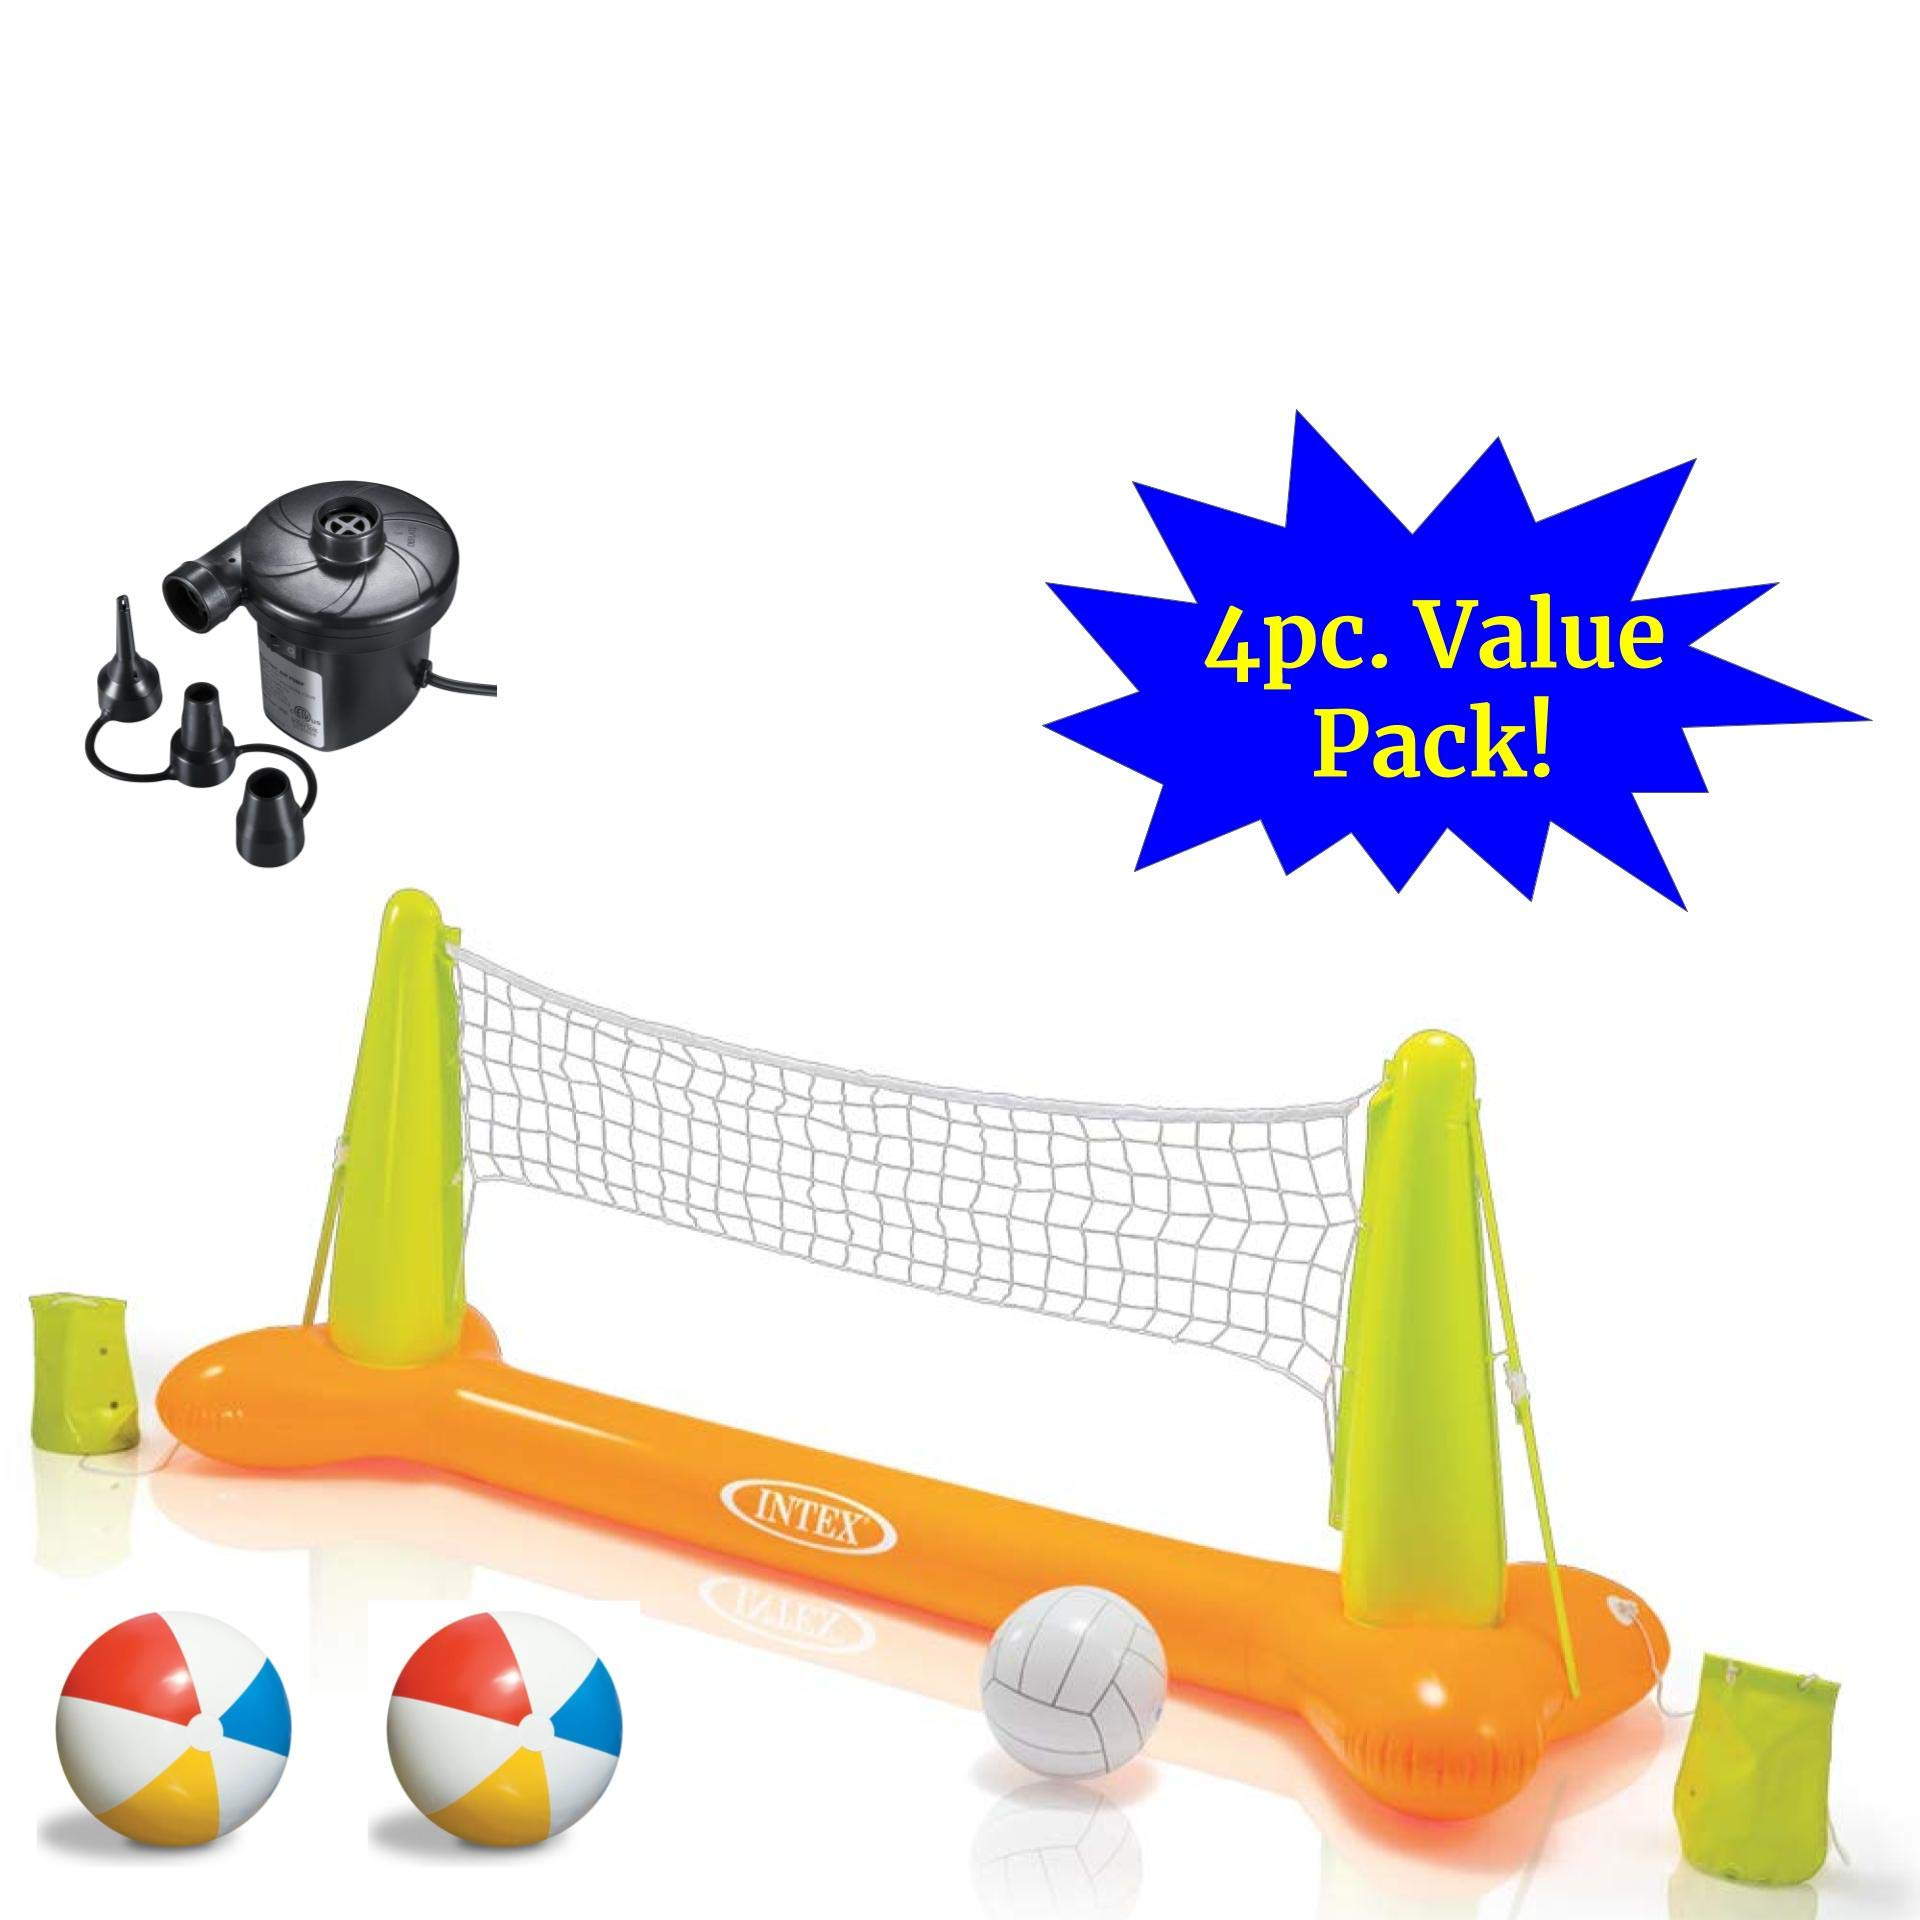 JOEY'Z Ultimate Pool Party Volleyball Set - Floating Inflatable Pool Volleyball Game with High Speed Air Pump & Two Beach Balls (4 Piece Bundle) by JOEY'Z